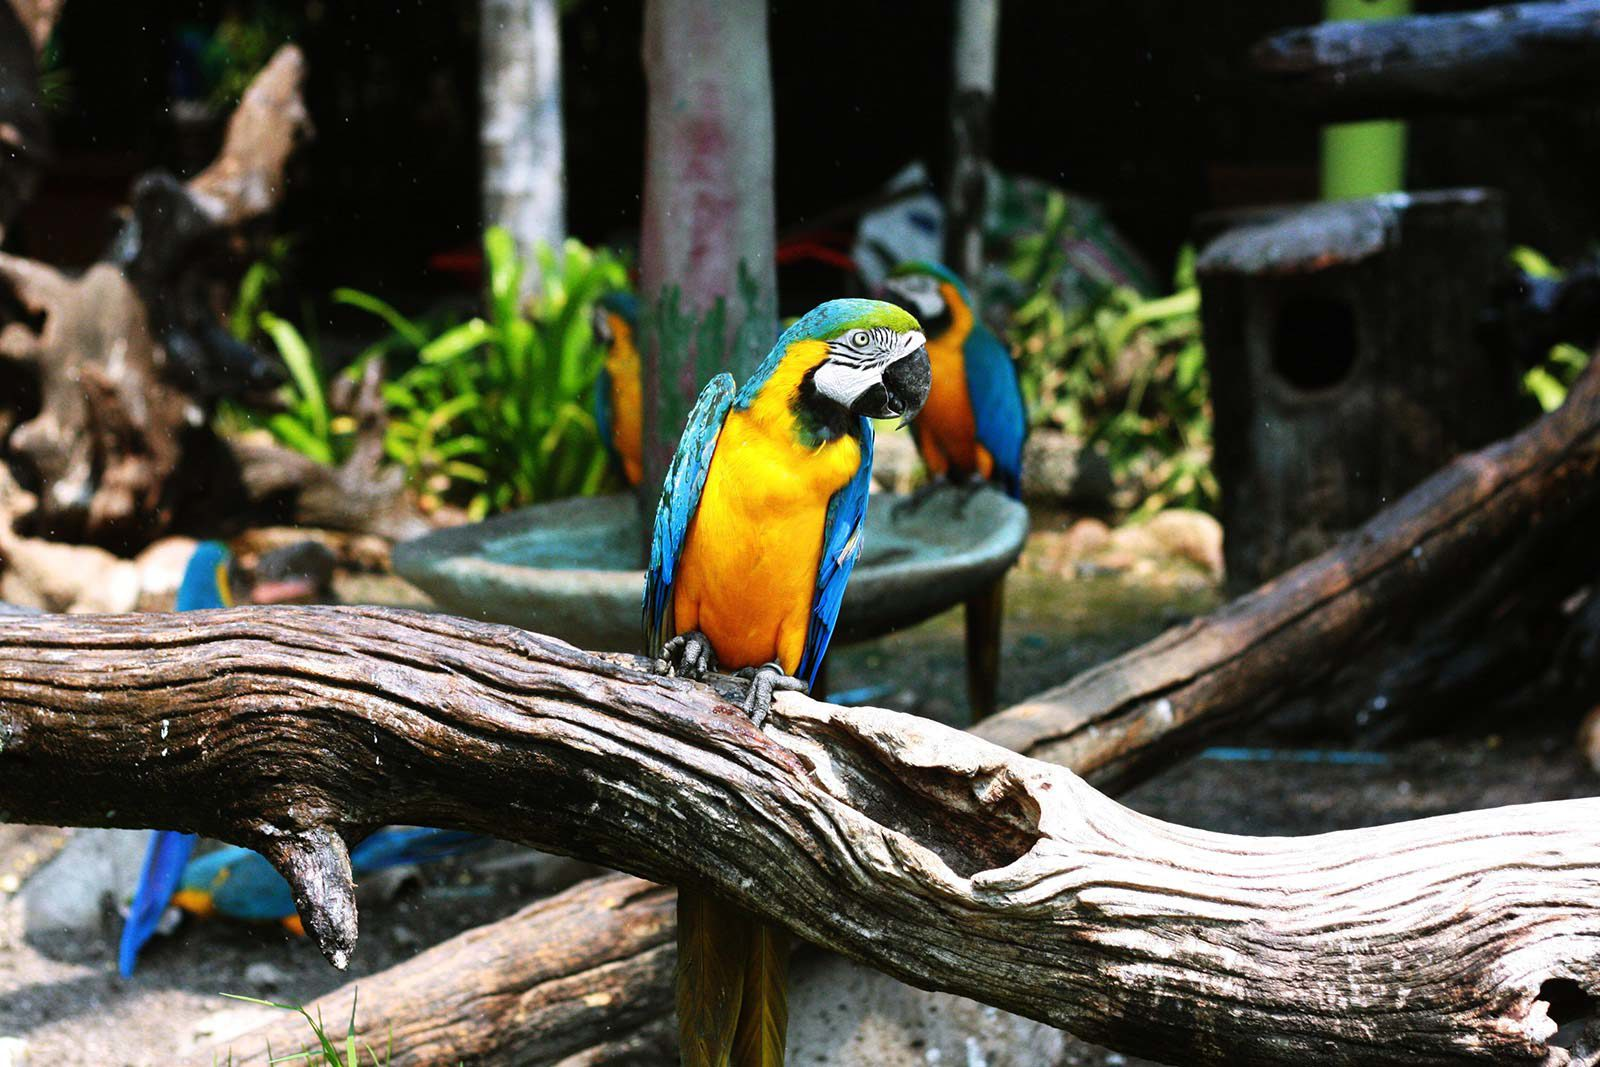 Parrot sitting on log in enclosure with other parrots in background.